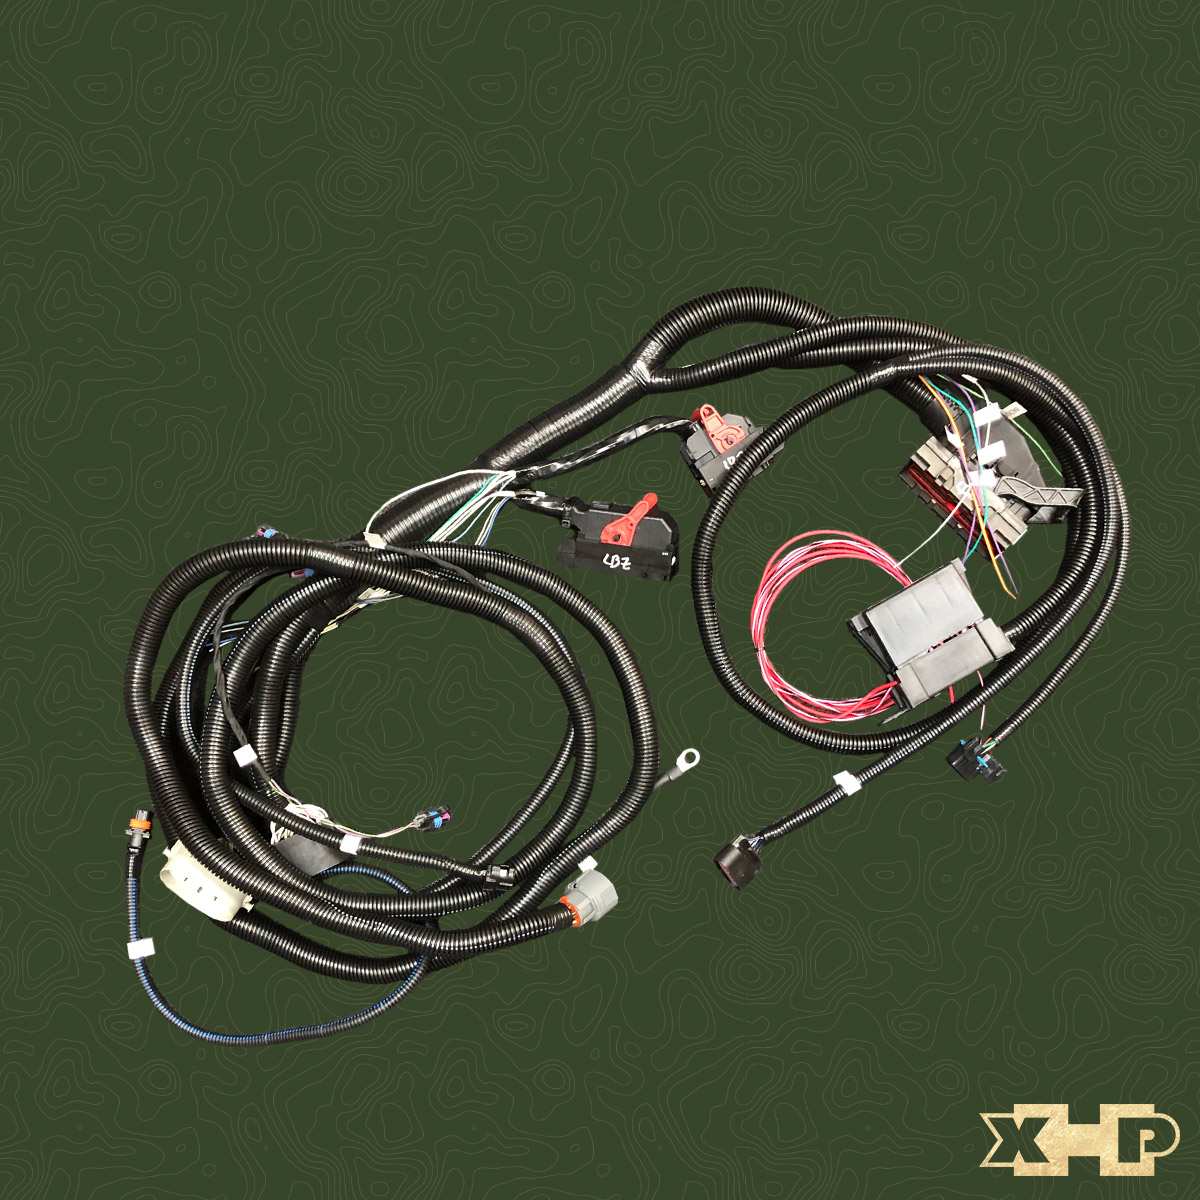 Hummer H1 Duramax Standalone Harnesses on duramax swap harness, duramax standalone harness, toyota conversion wiring harness, duramax conversion fuel tank, cummins conversion wiring harness,